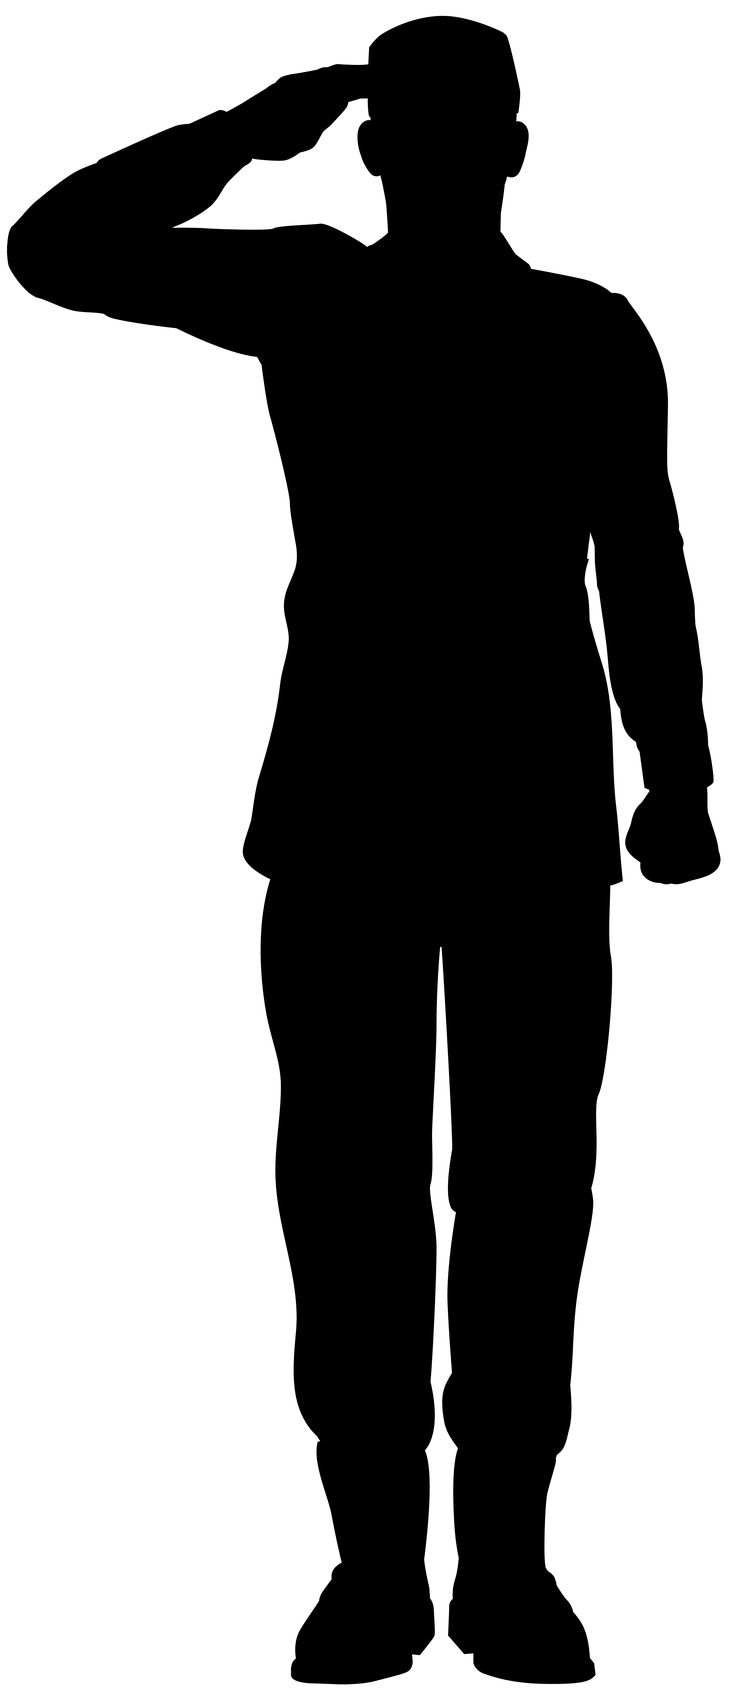 Navy Soldier Silhouette